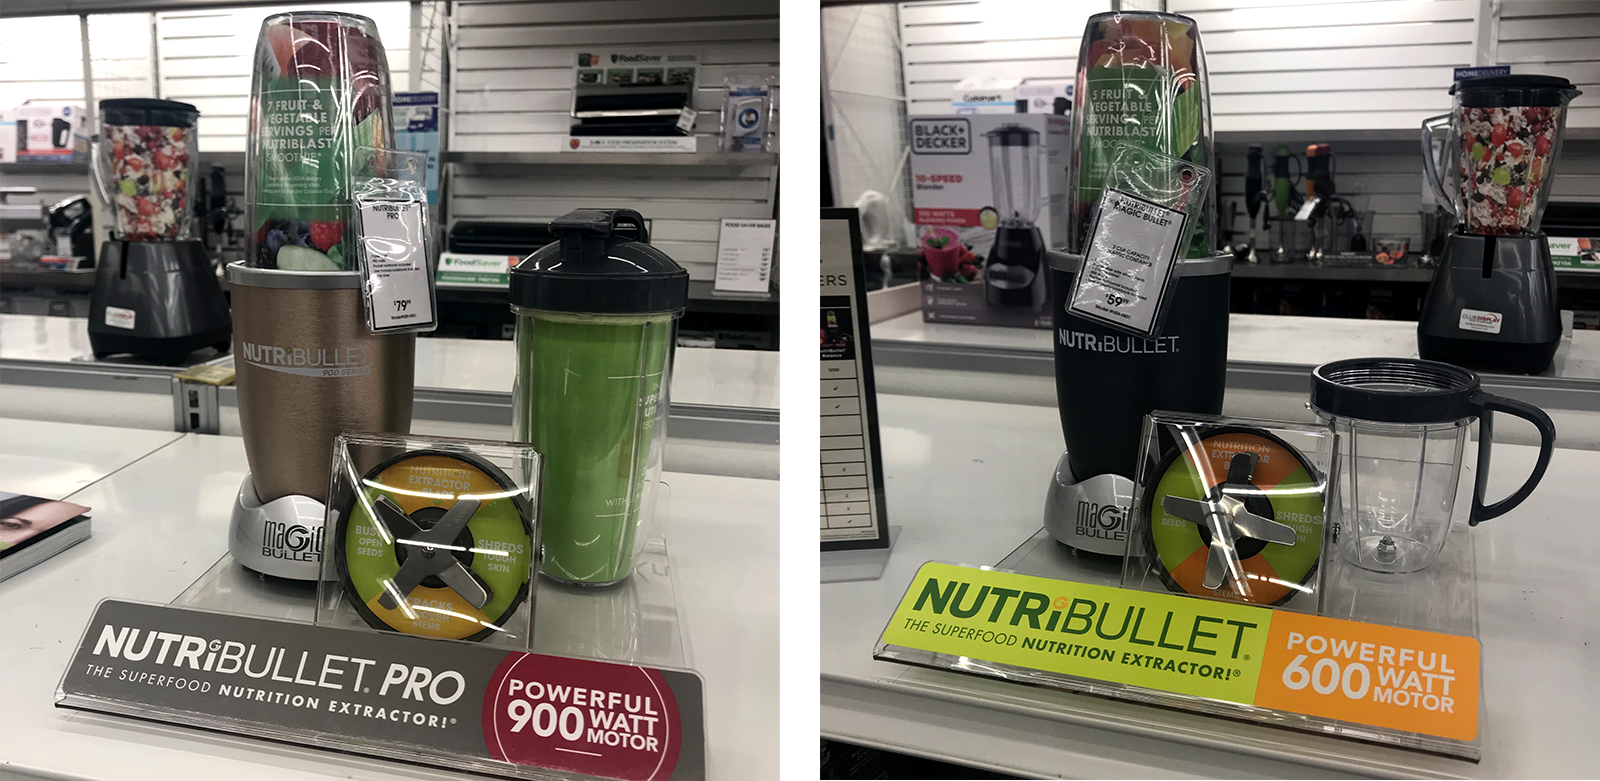 bed-bath-beyond-nutri-bullet-pro